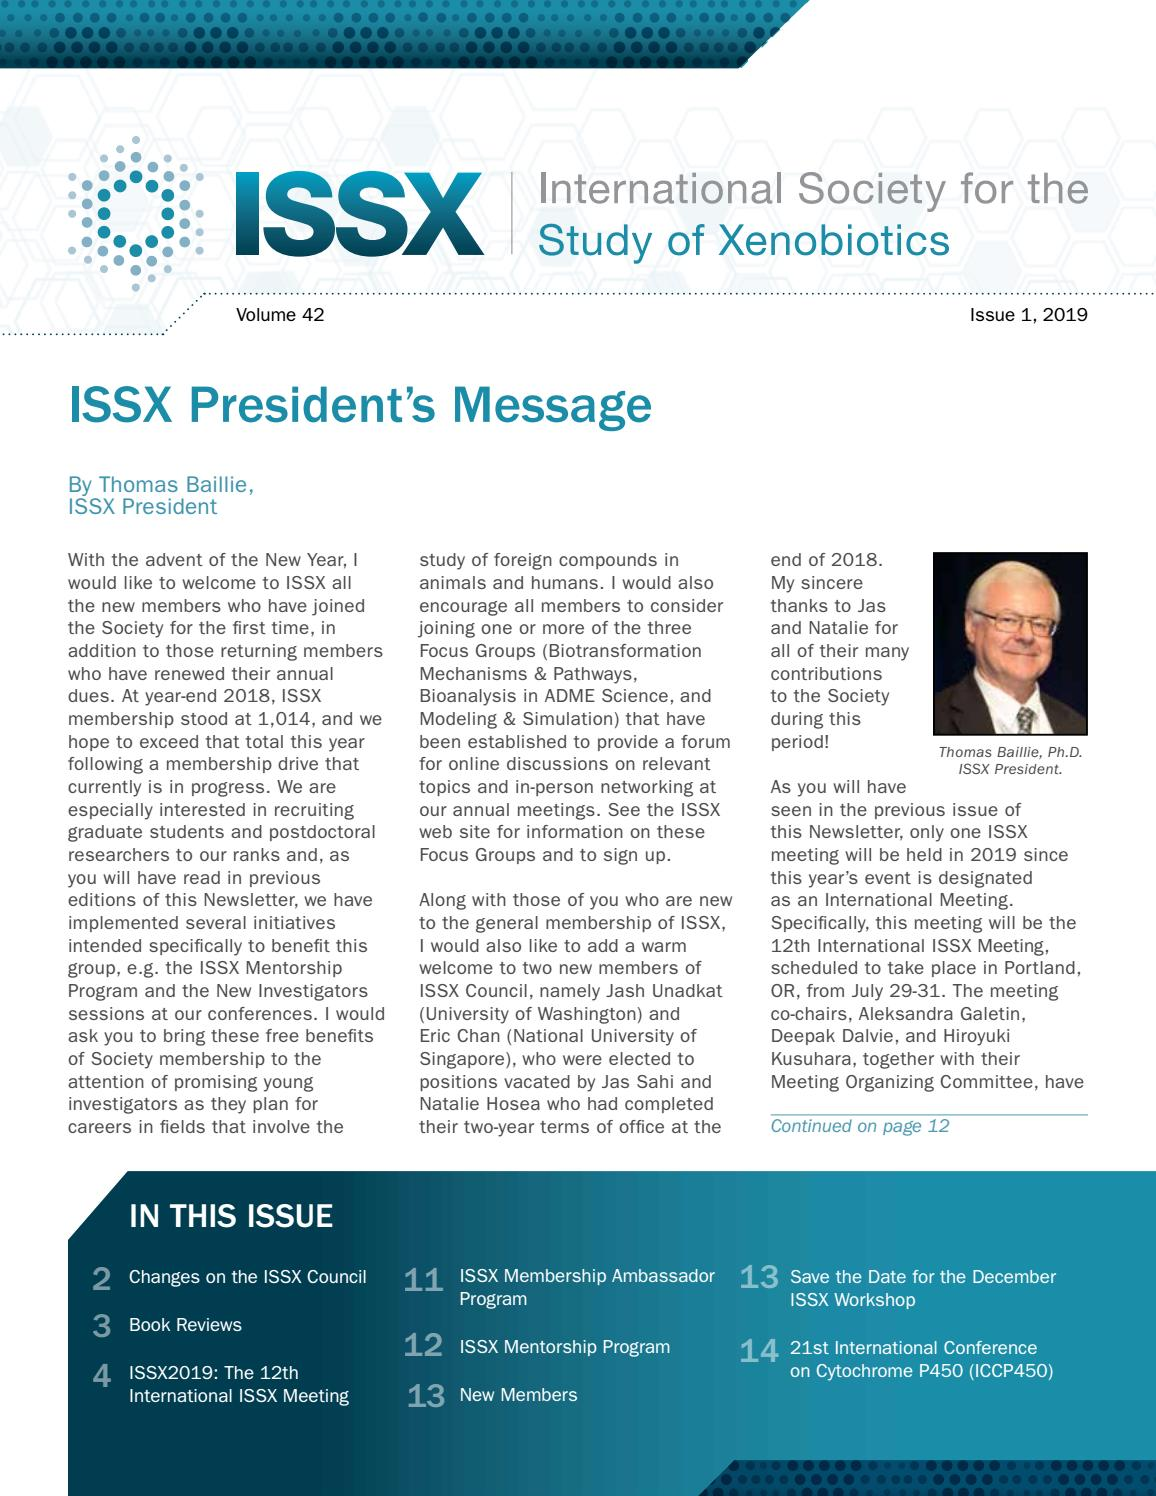 ISSX Newsletter | Issue 1, 2019 by ISSX - issuu